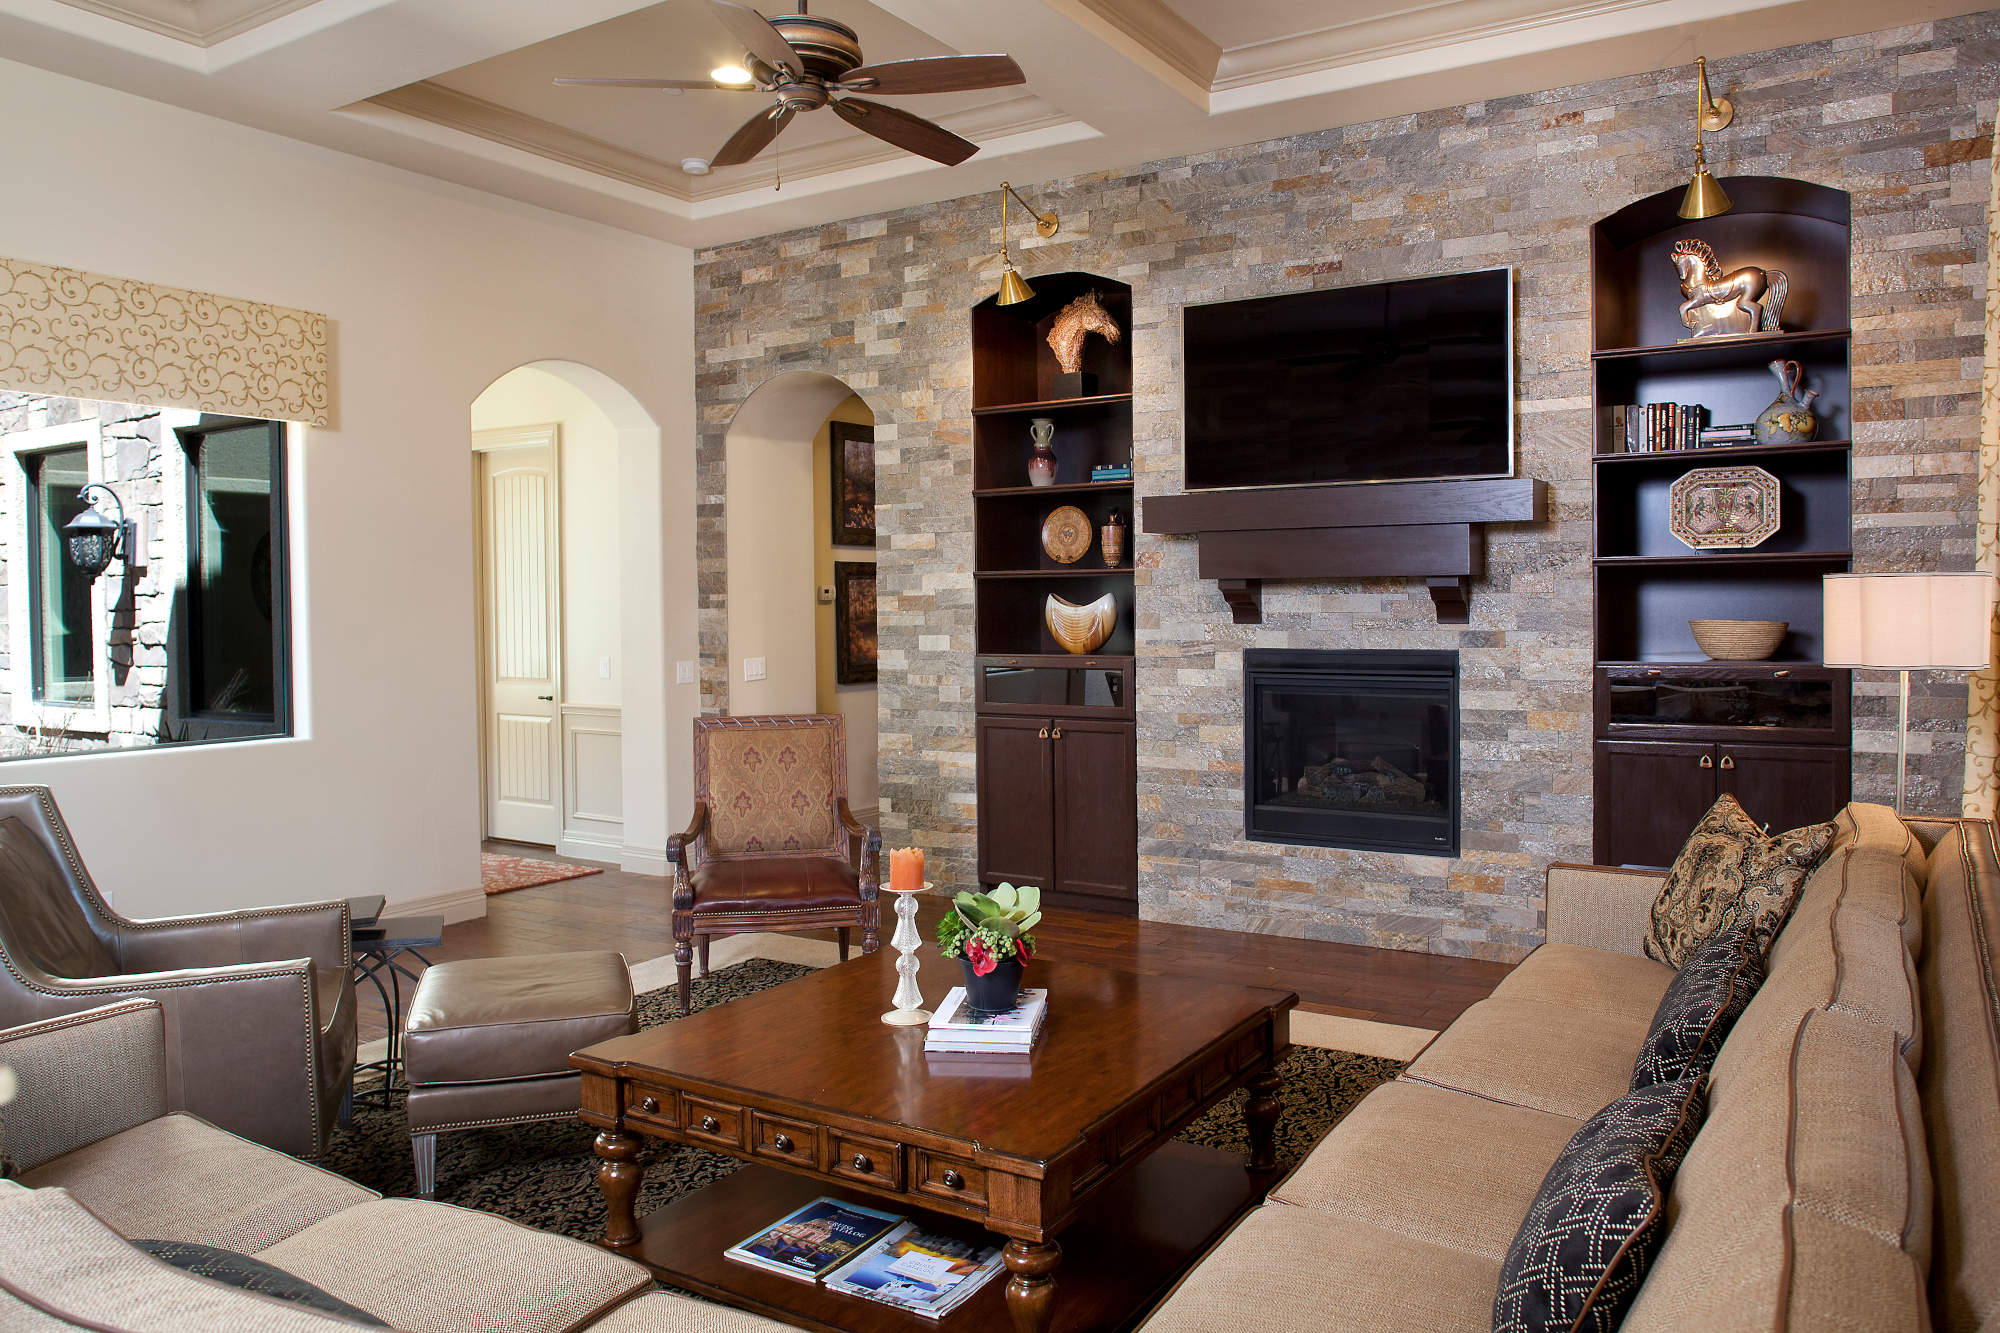 Traditional styled family room with stacked stone wall, fireplace and wood mantel.